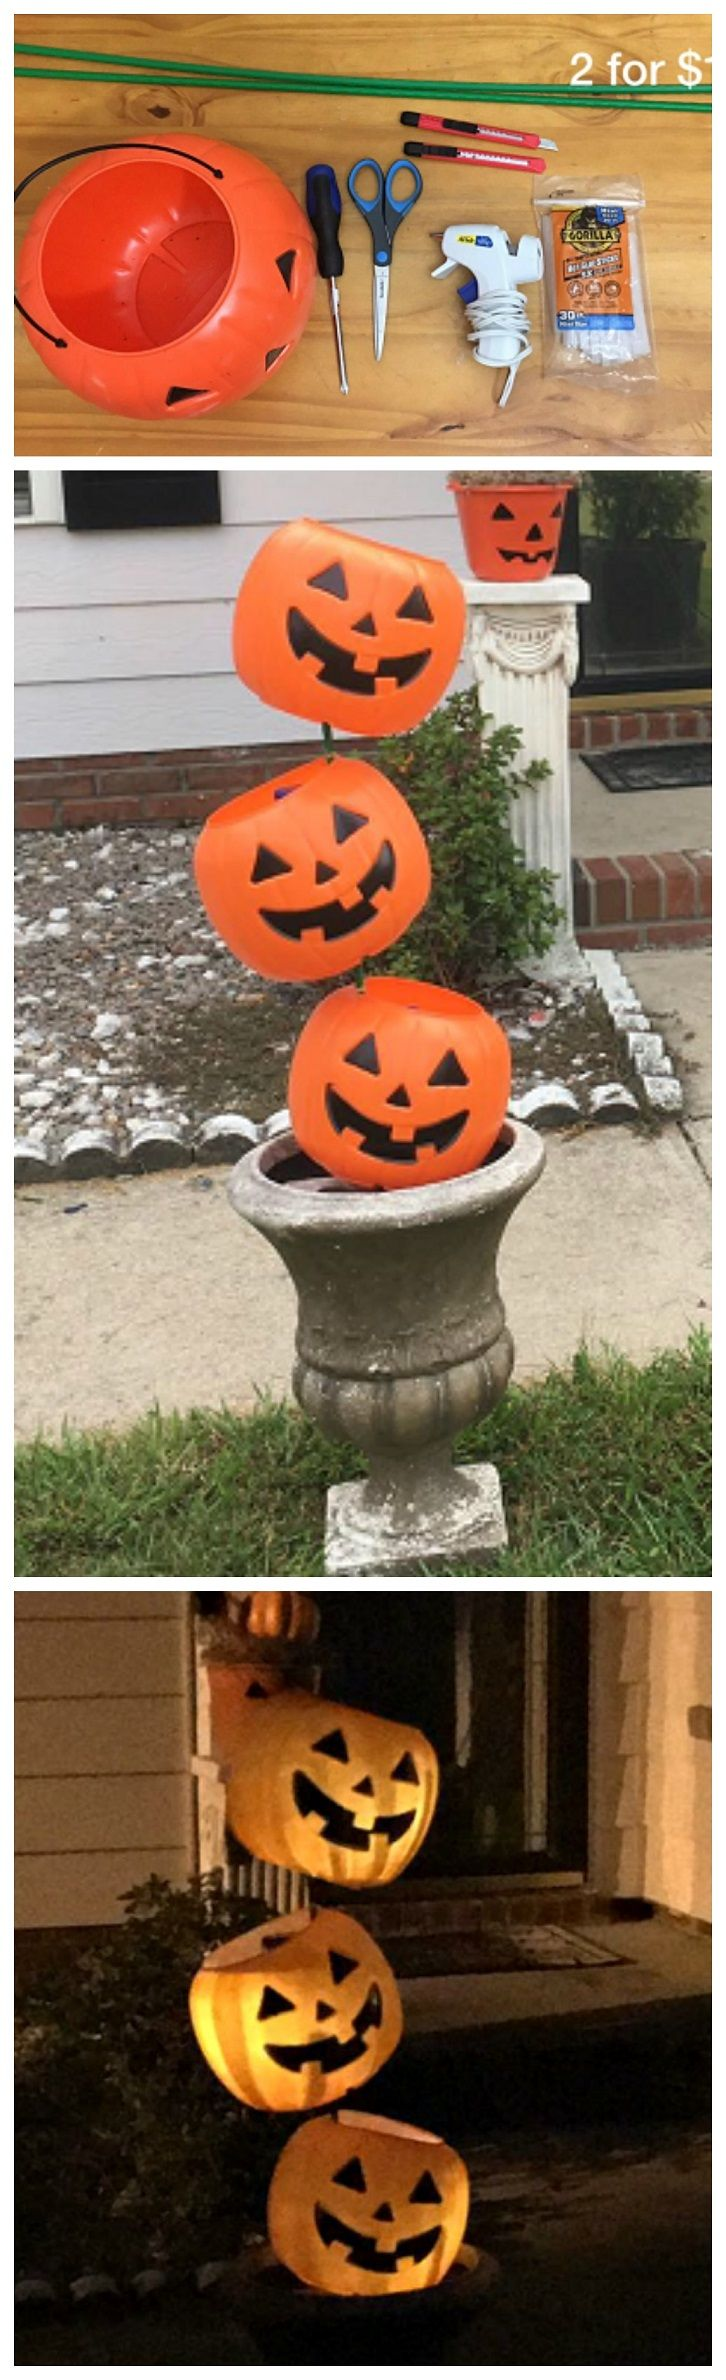 make a plastic pumpkin pail tipsy decoration for halloween such a cheap and easy craft - Cute Cheap Halloween Decorations